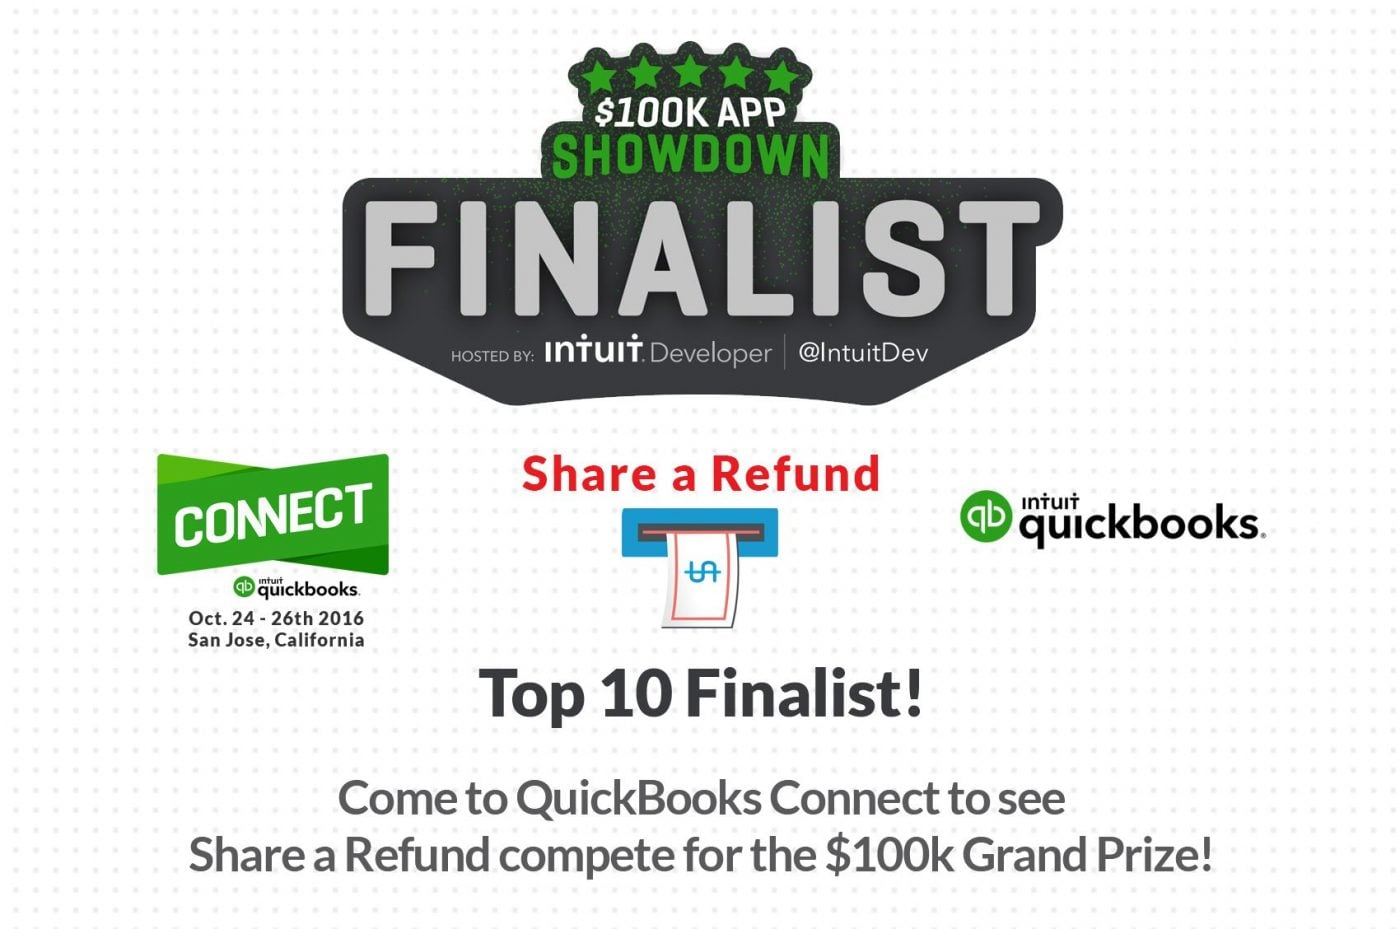 quickbooks | Share a Refund